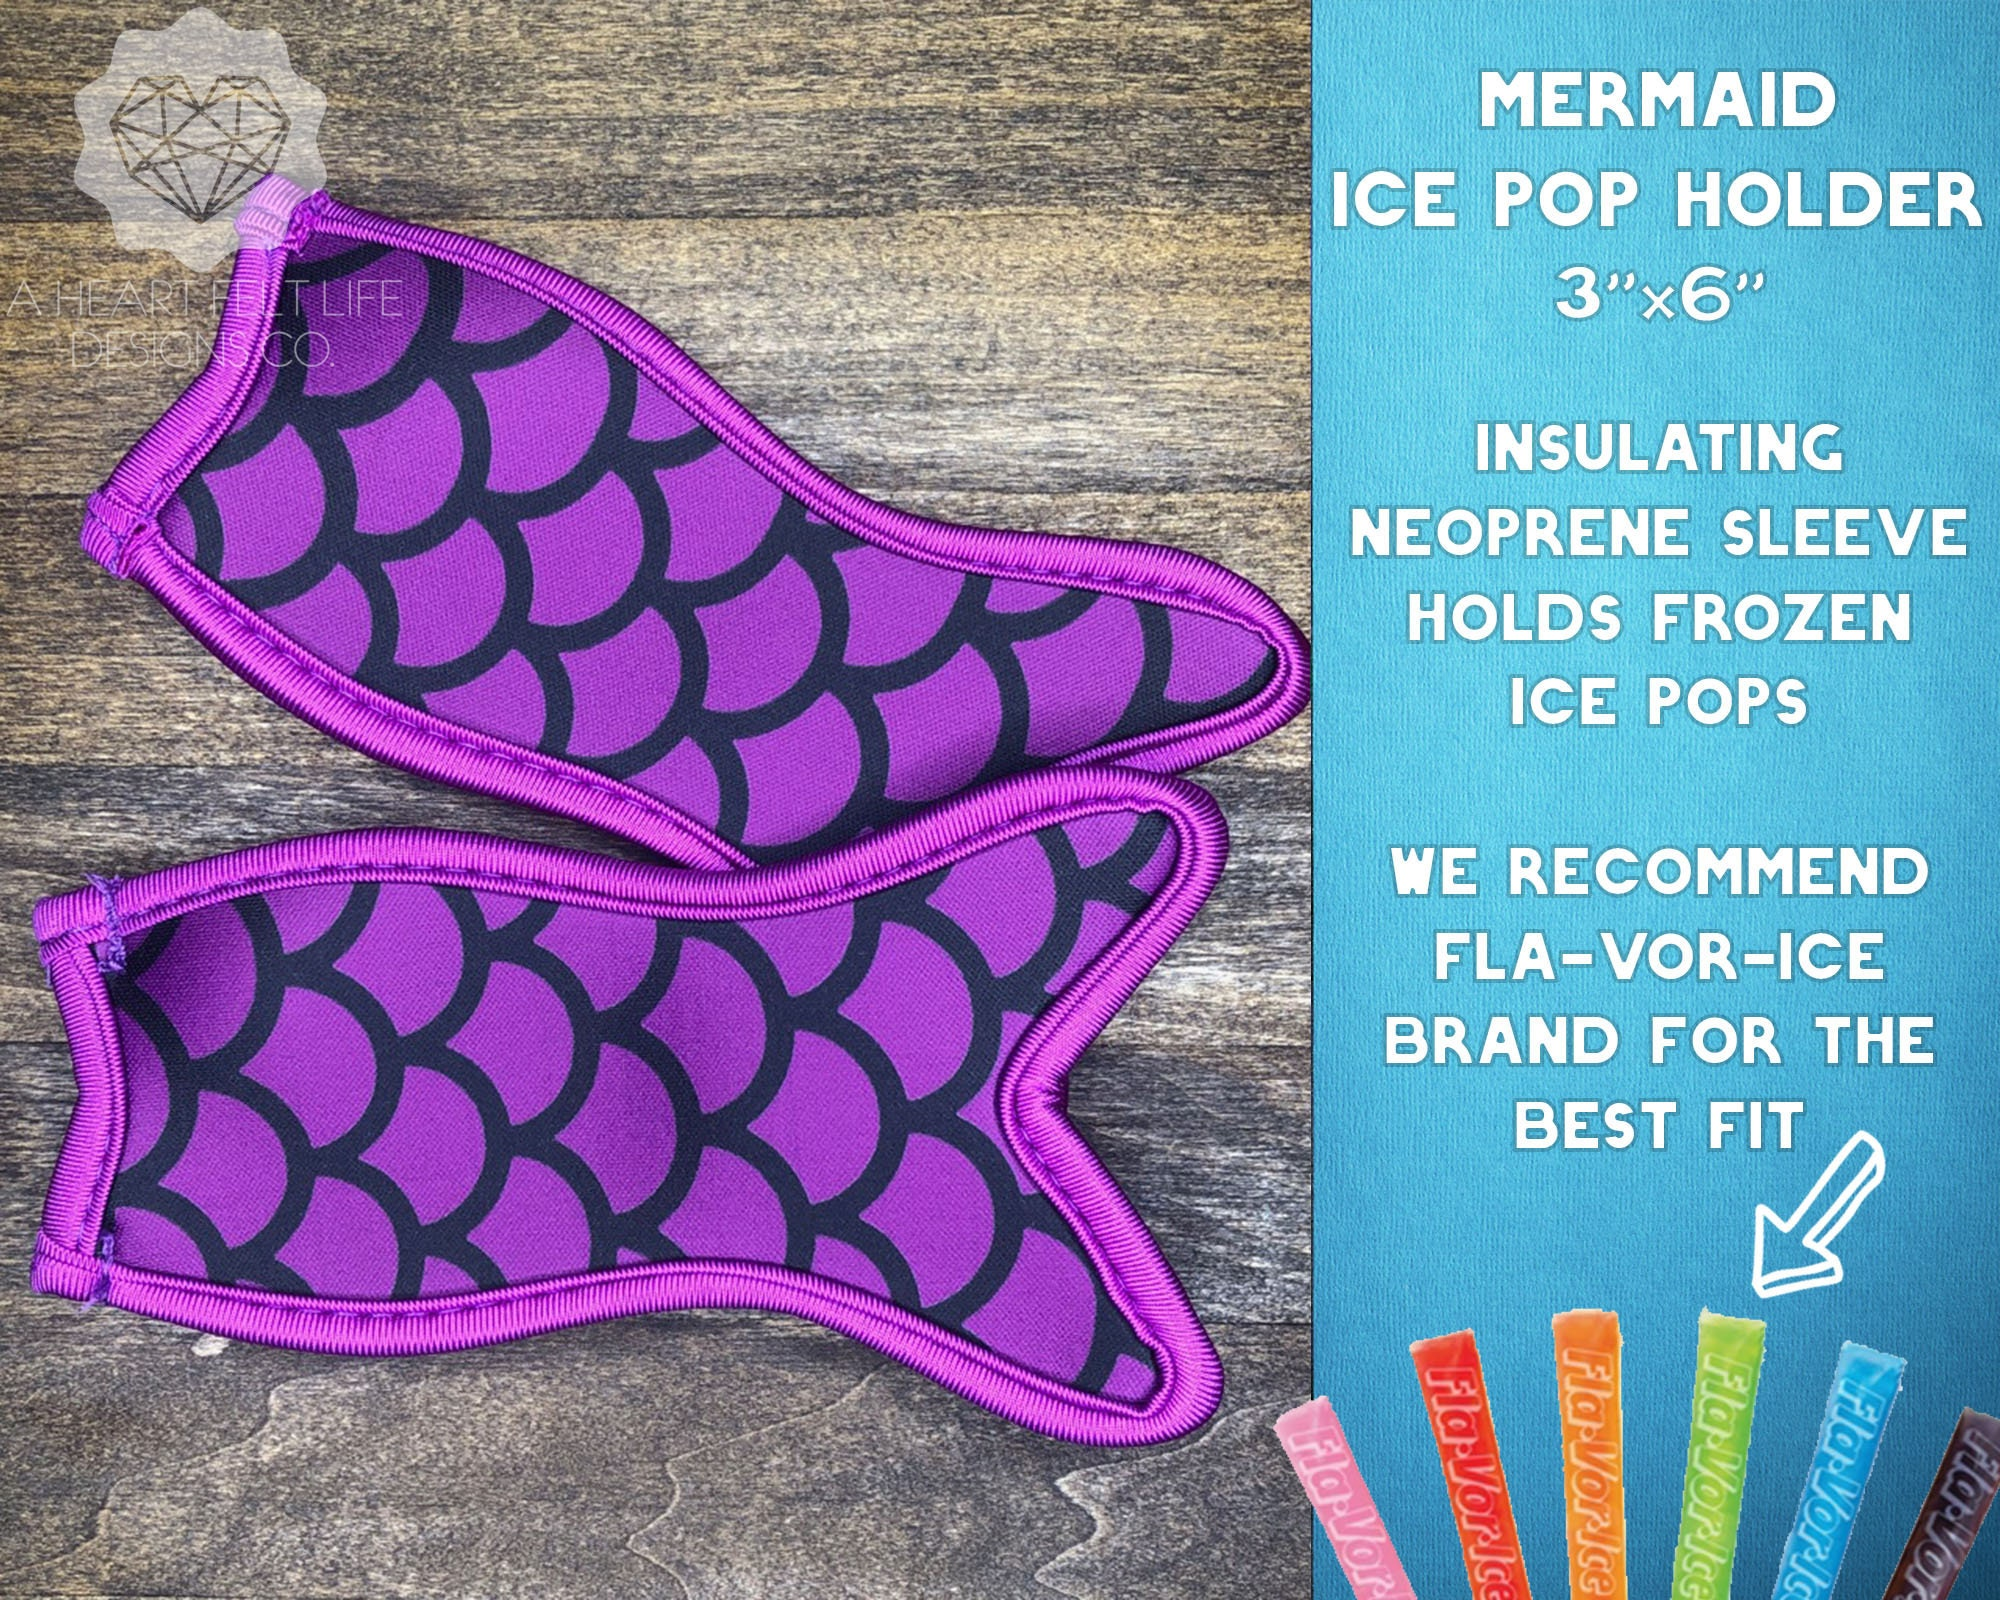 12 Pieces Popsicle Holder Bags Ice Pop Sleeves Bags Mermaid and Shark Shape Popsicle Covers